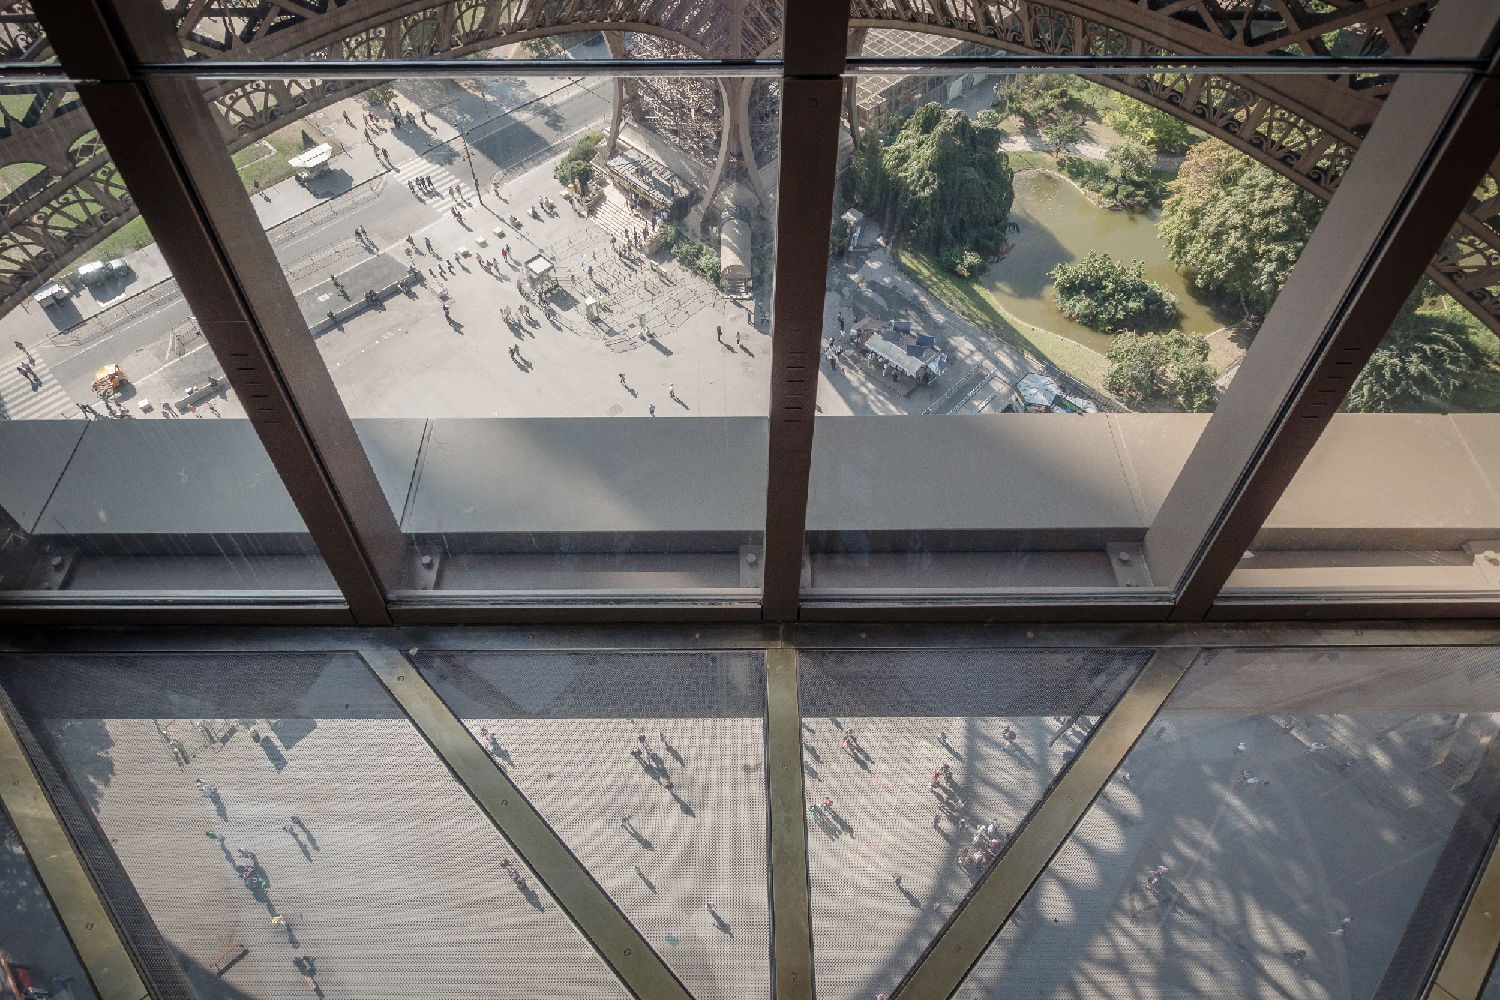 Glass Floor on the first floor of the Eiffel Tower